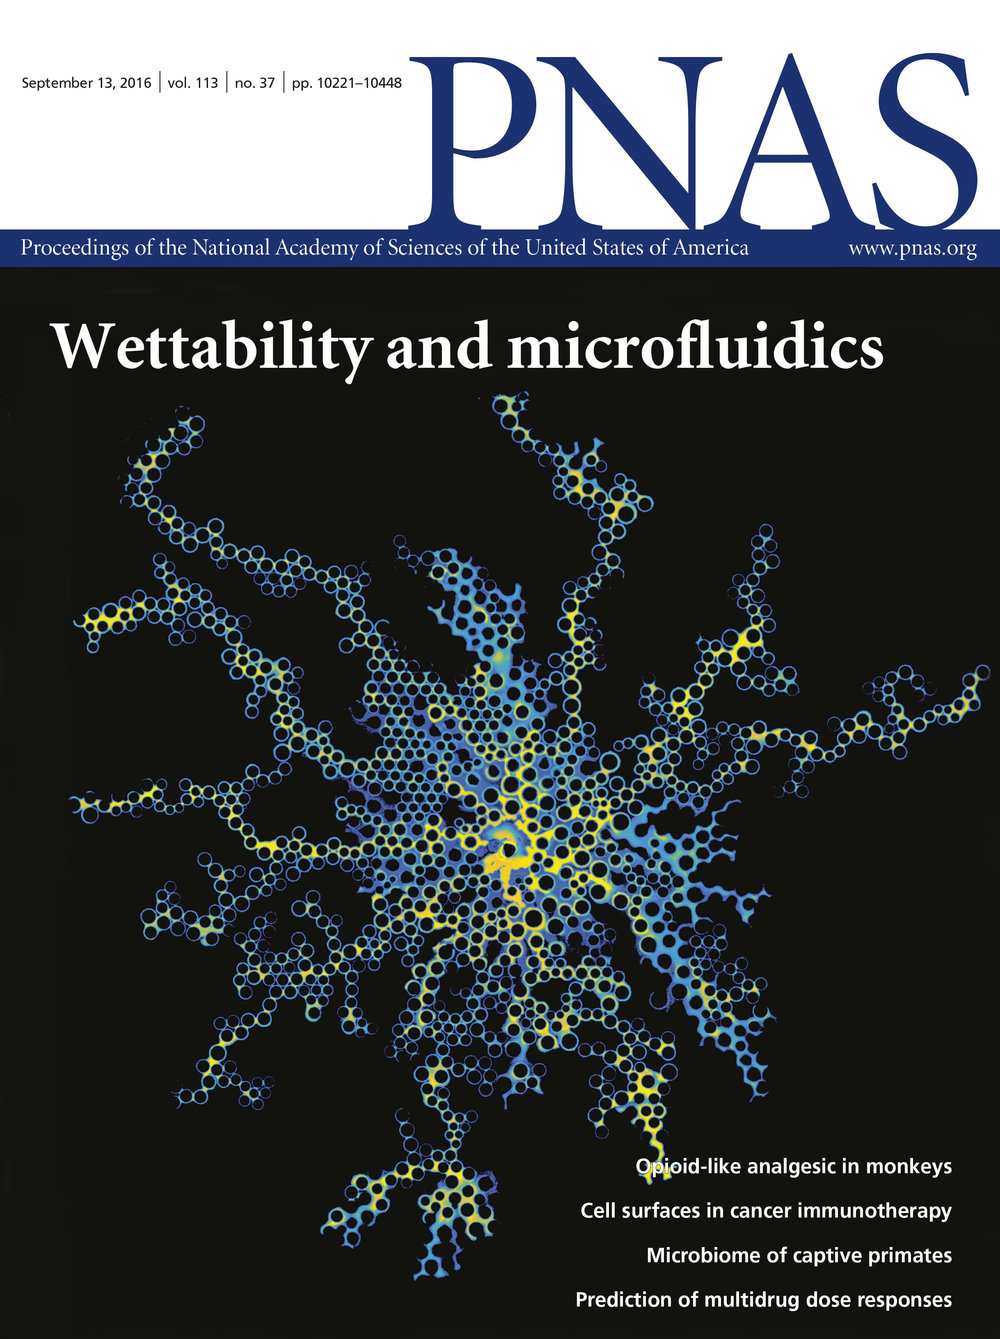 This work was featured as the cover story of PNAS's Issue 37 in 2016 .